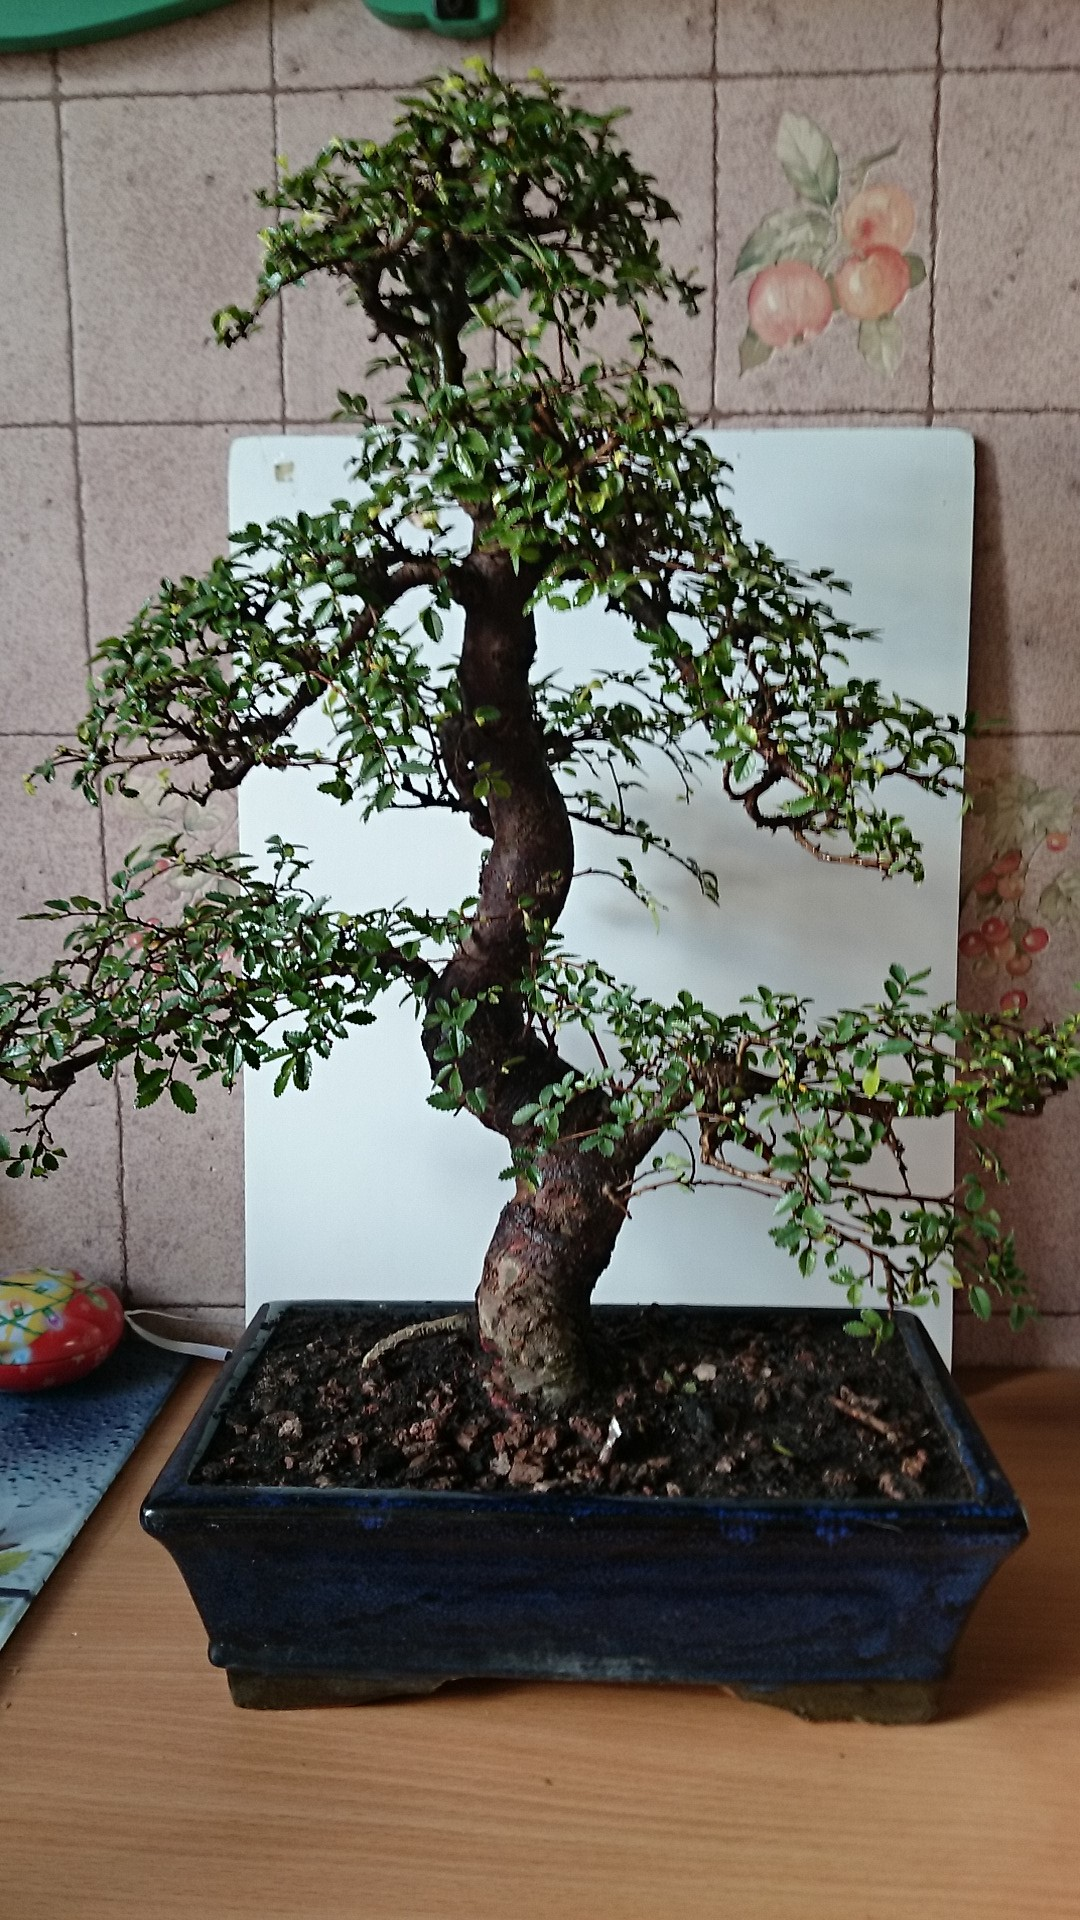 Bonsa cr ation l 39 album photos autres - Orme de chine bonsai ...